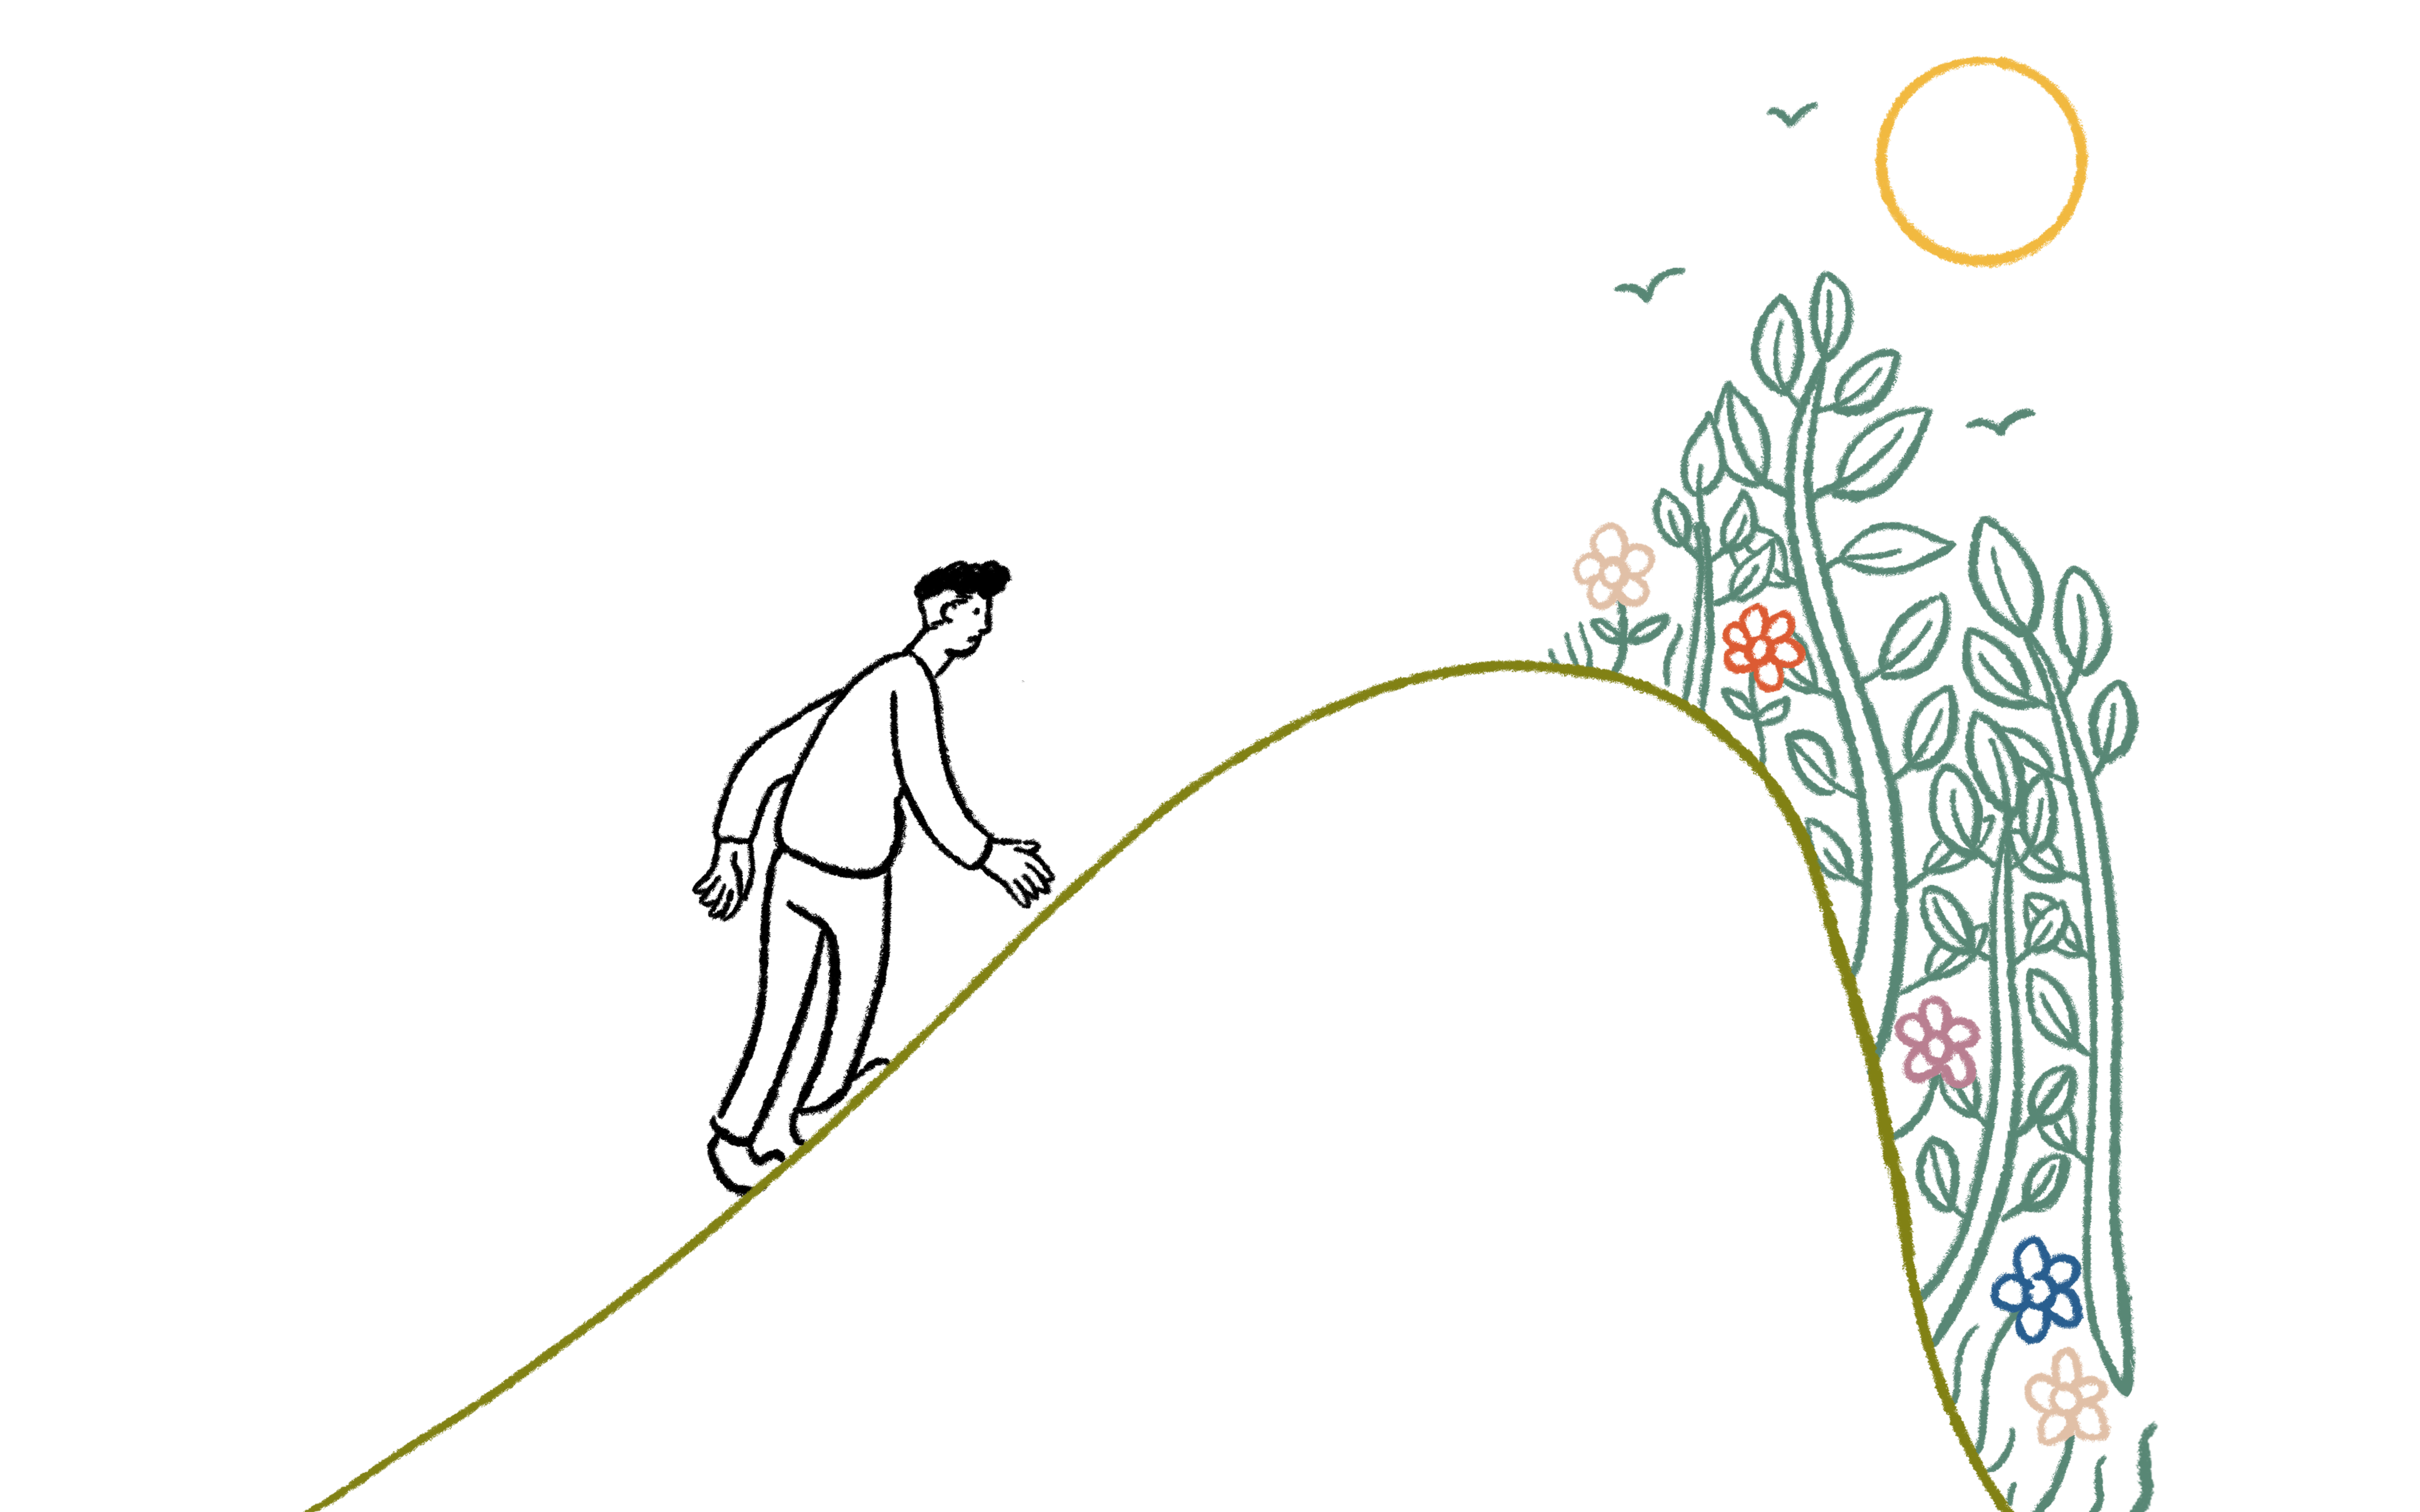 illustration of a man climbing up a hill with a garden on the other side